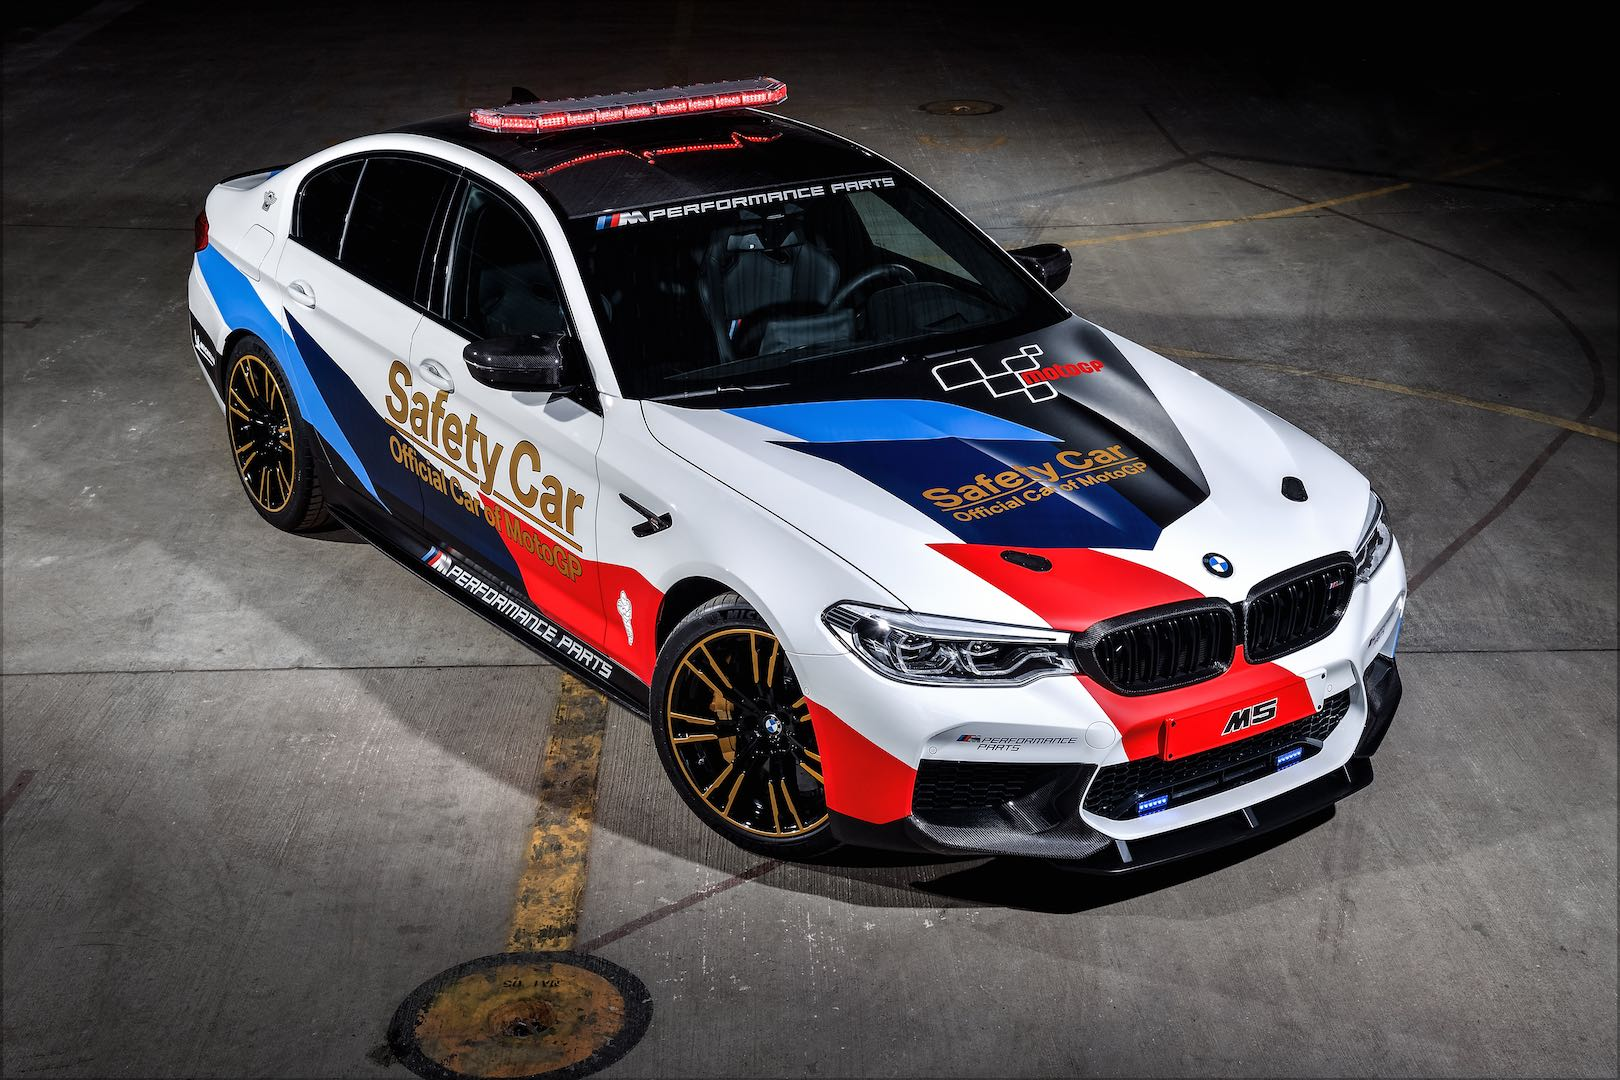 2018 bmw m5 motogp safety car exposed. Black Bedroom Furniture Sets. Home Design Ideas